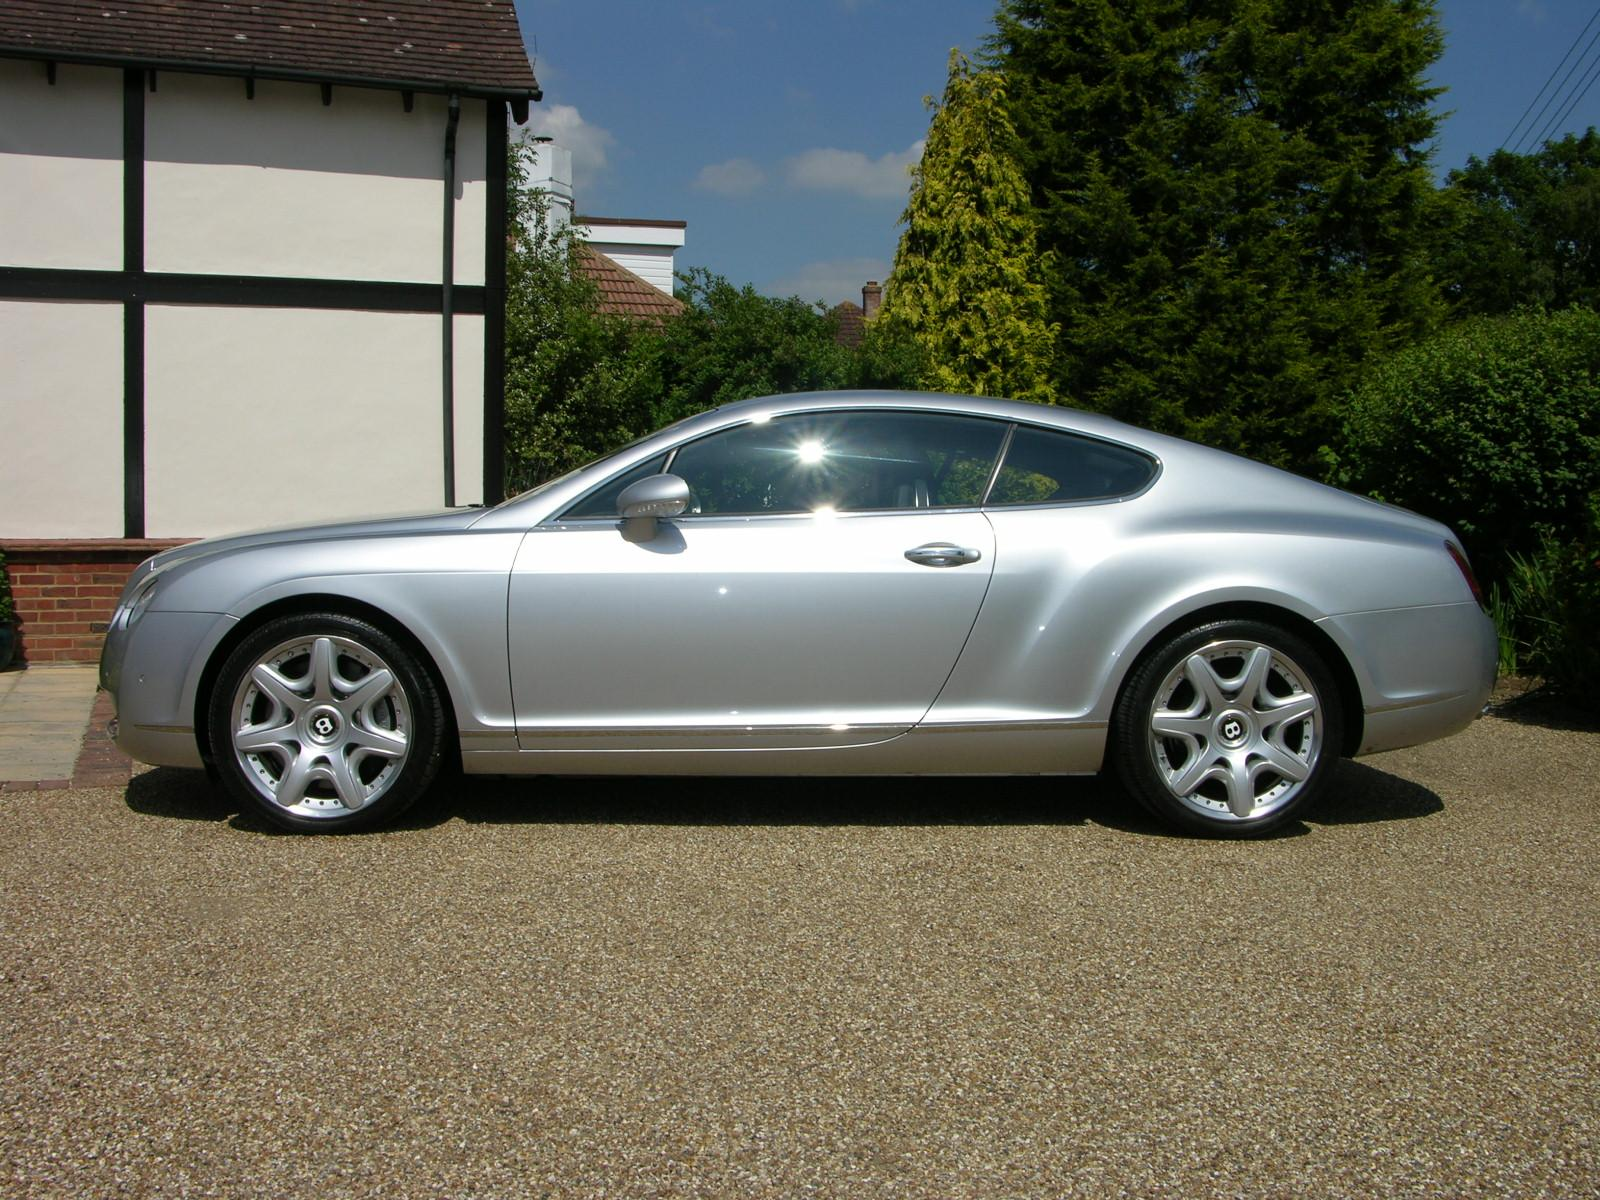 file 2006 bentley continental gt mulliner flickr the car spy 7. Cars Review. Best American Auto & Cars Review